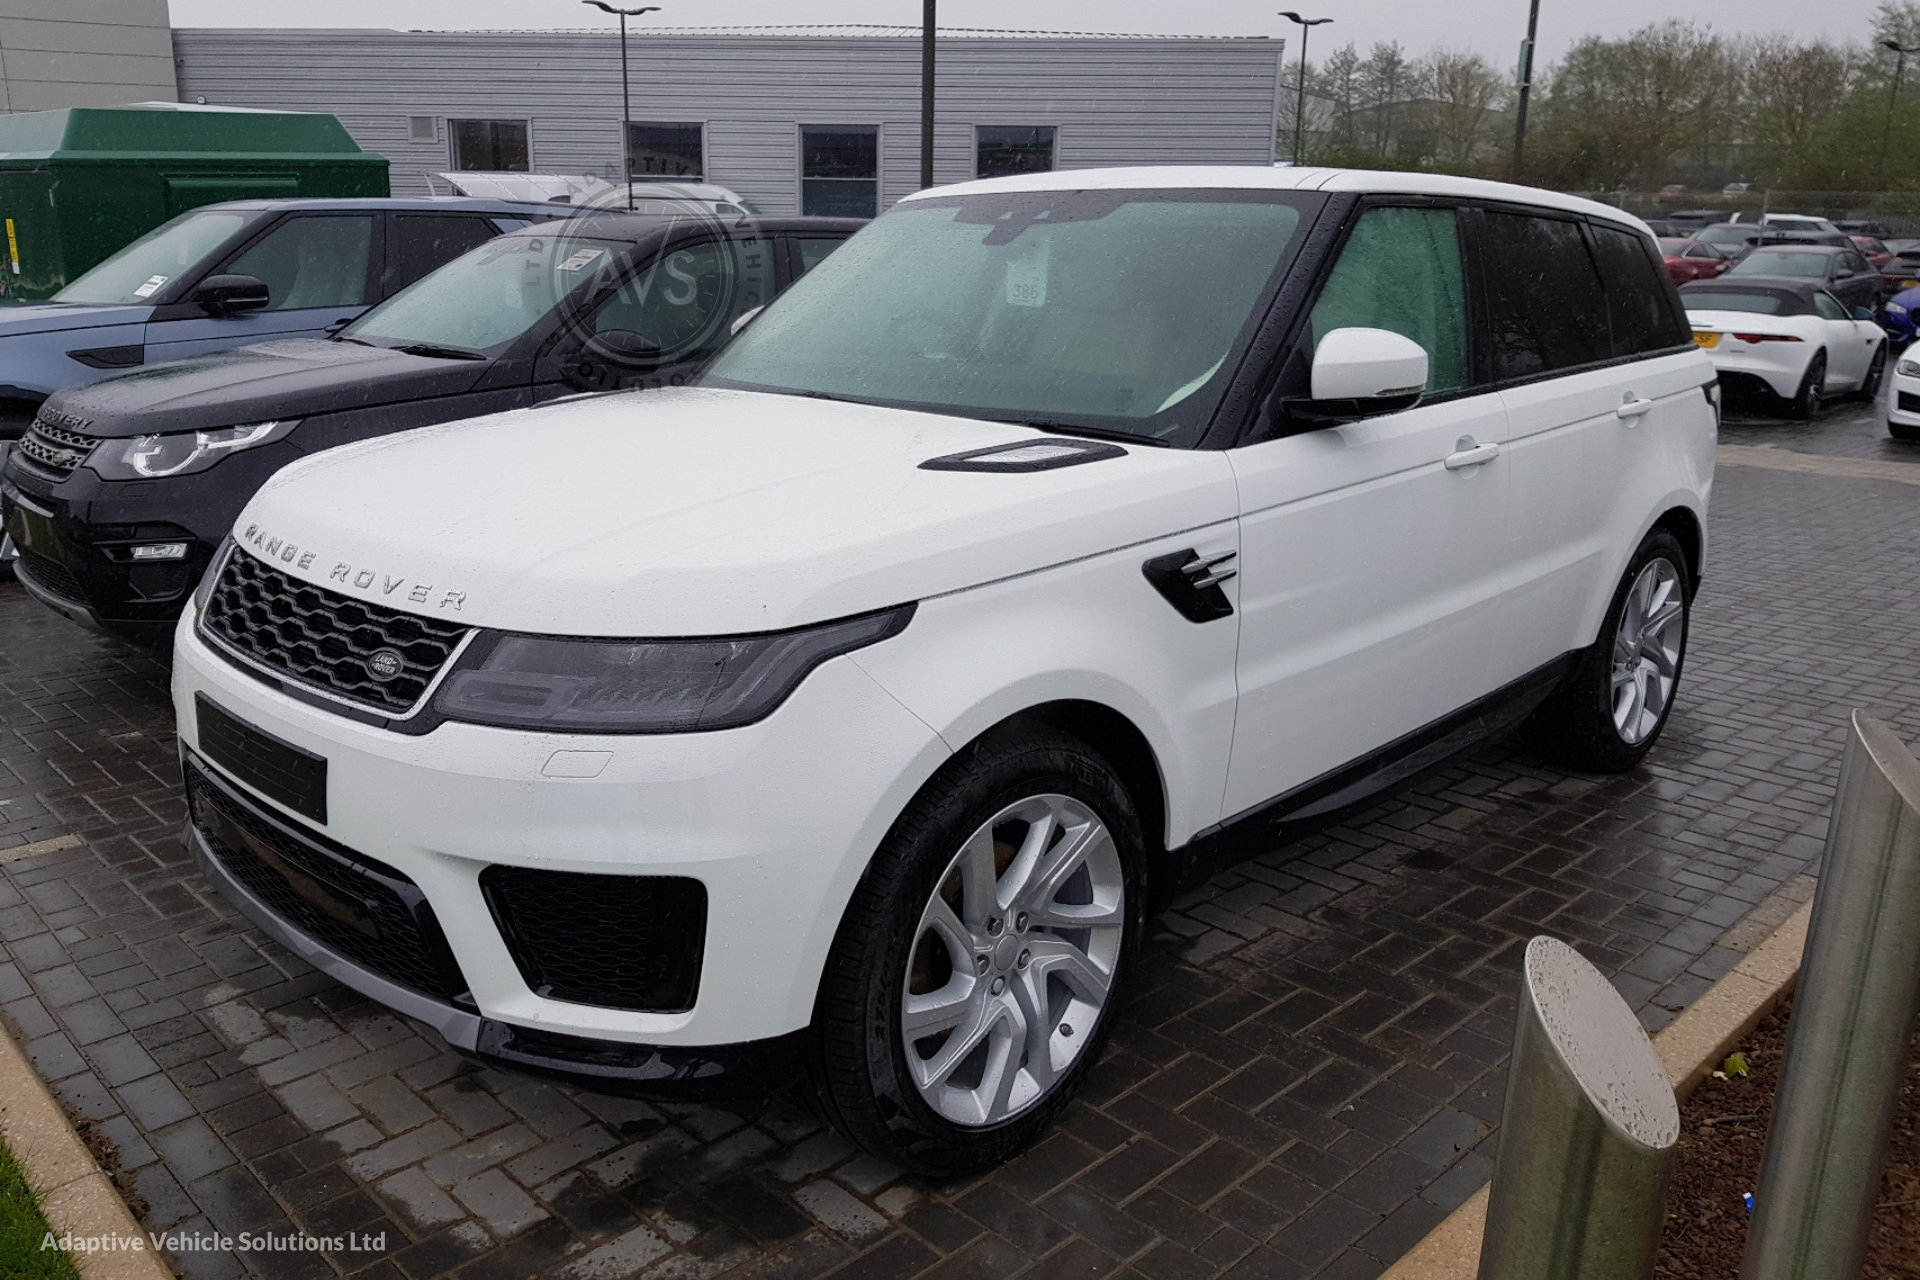 2018 range rover sport hse dynamic 5 2 adaptive vehicle. Black Bedroom Furniture Sets. Home Design Ideas